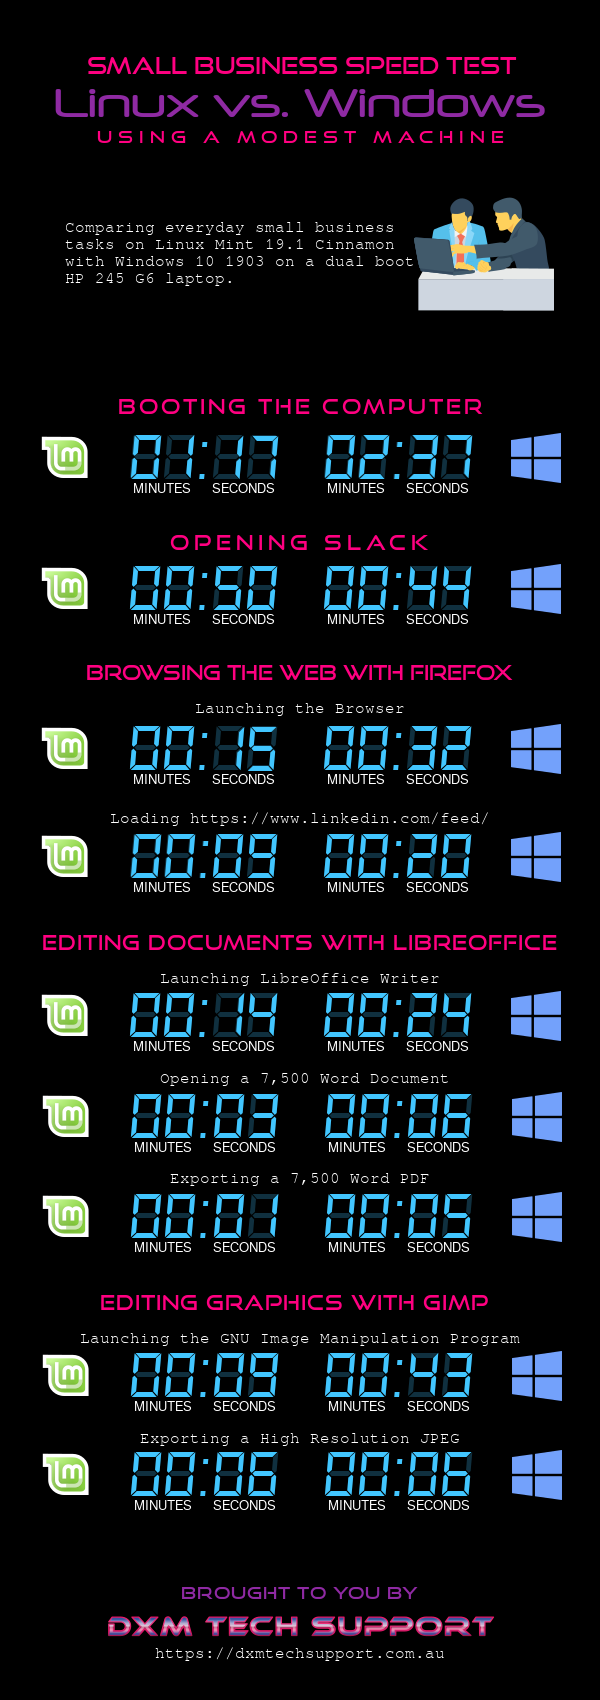 Linux vs. Windows for Small Business Productivity #infographic